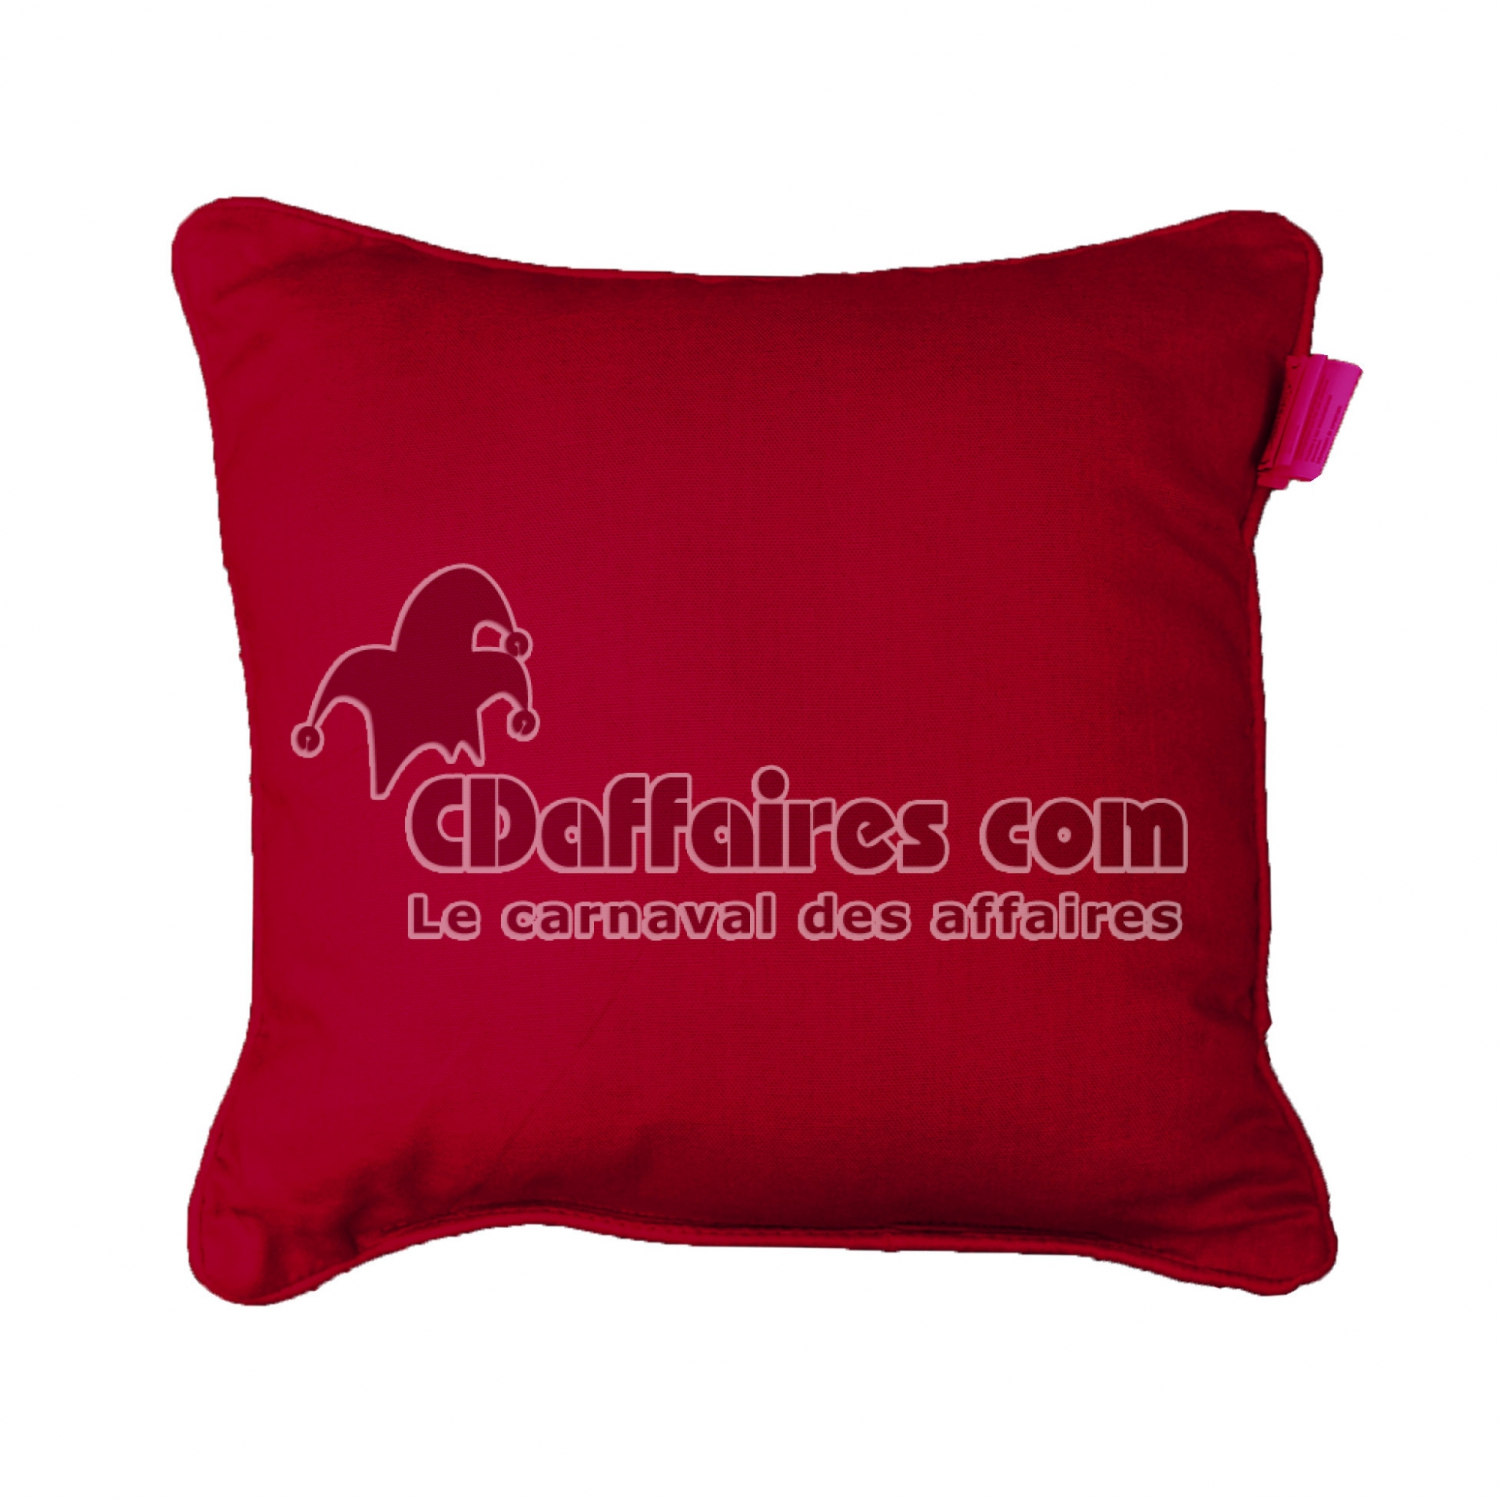 coussin passepoil 60 x 60 cm coton uni panama rouge cdaffaires. Black Bedroom Furniture Sets. Home Design Ideas